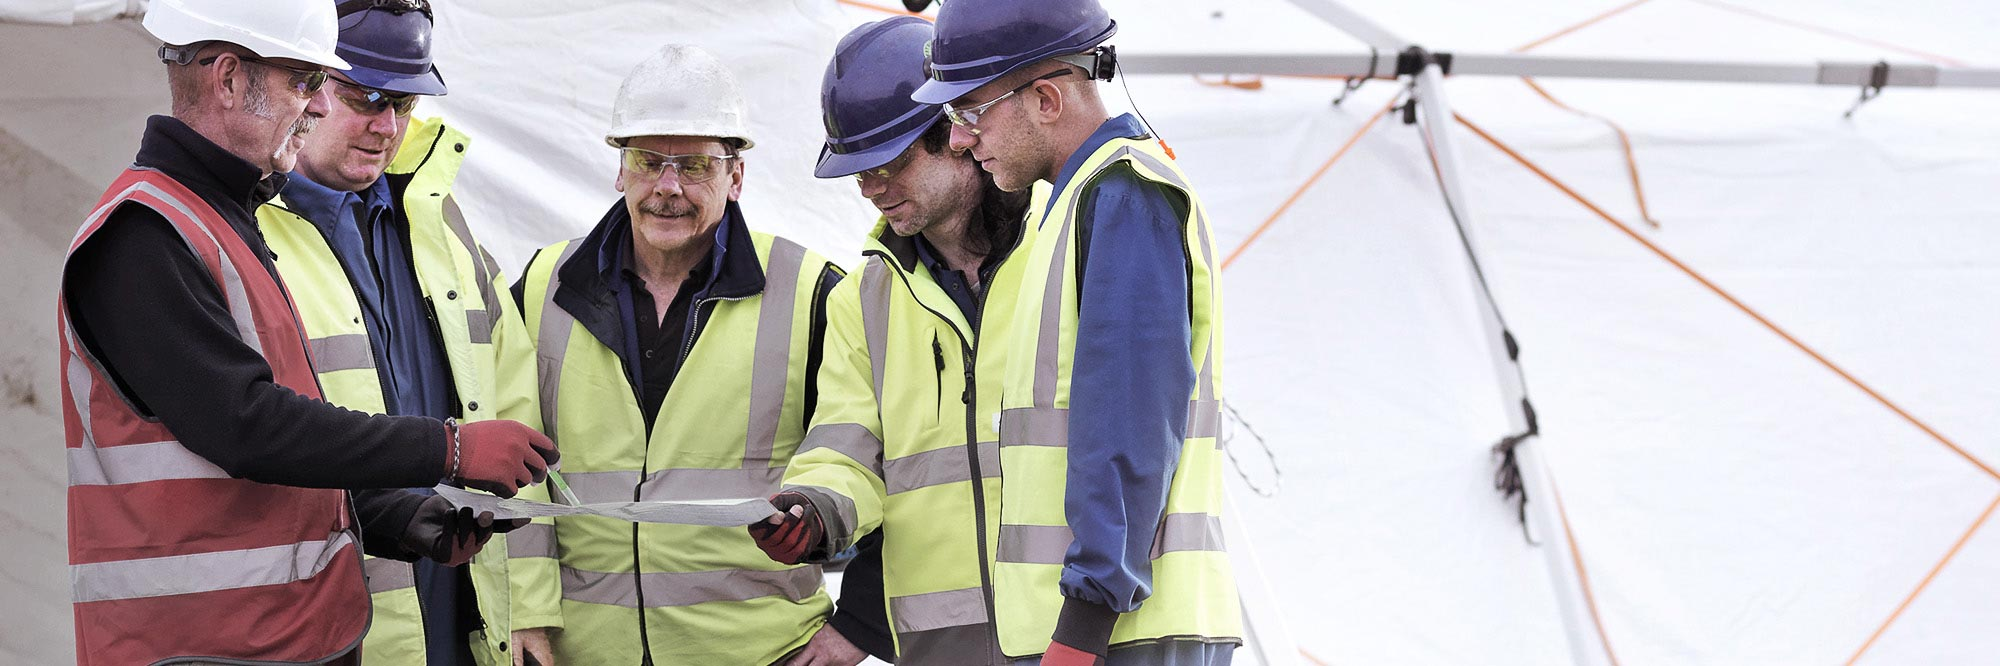 Workers reviewing plans